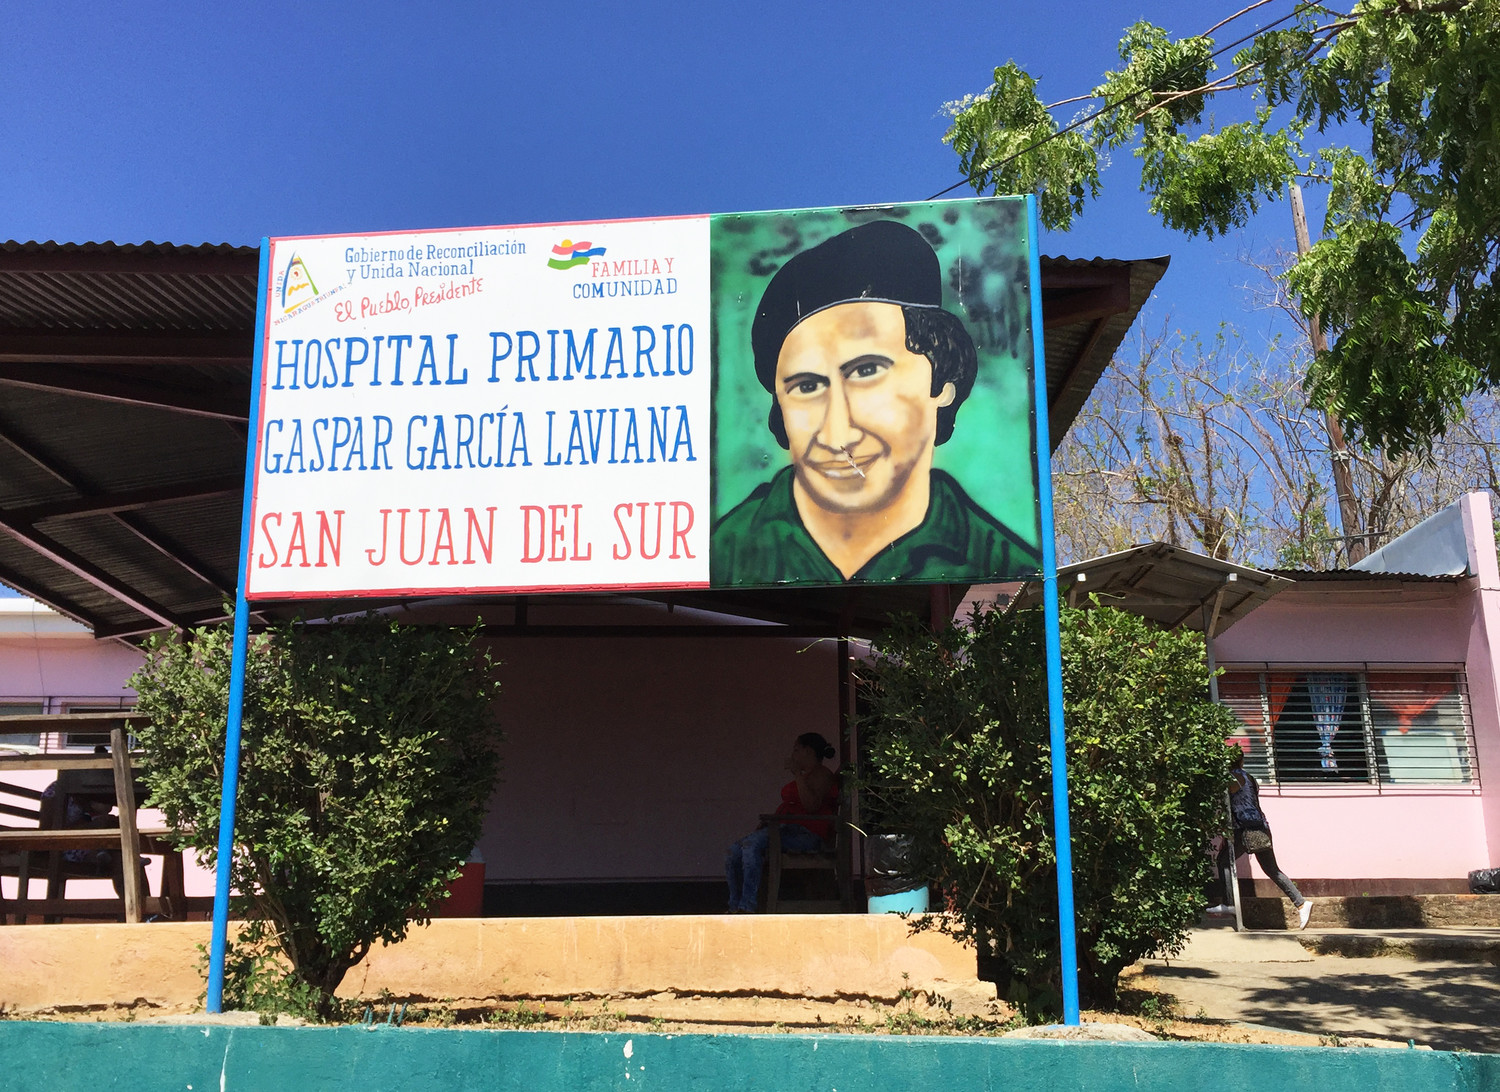 The community health clinic delivering primary care in San Juan Del Sur in Nicaragua.